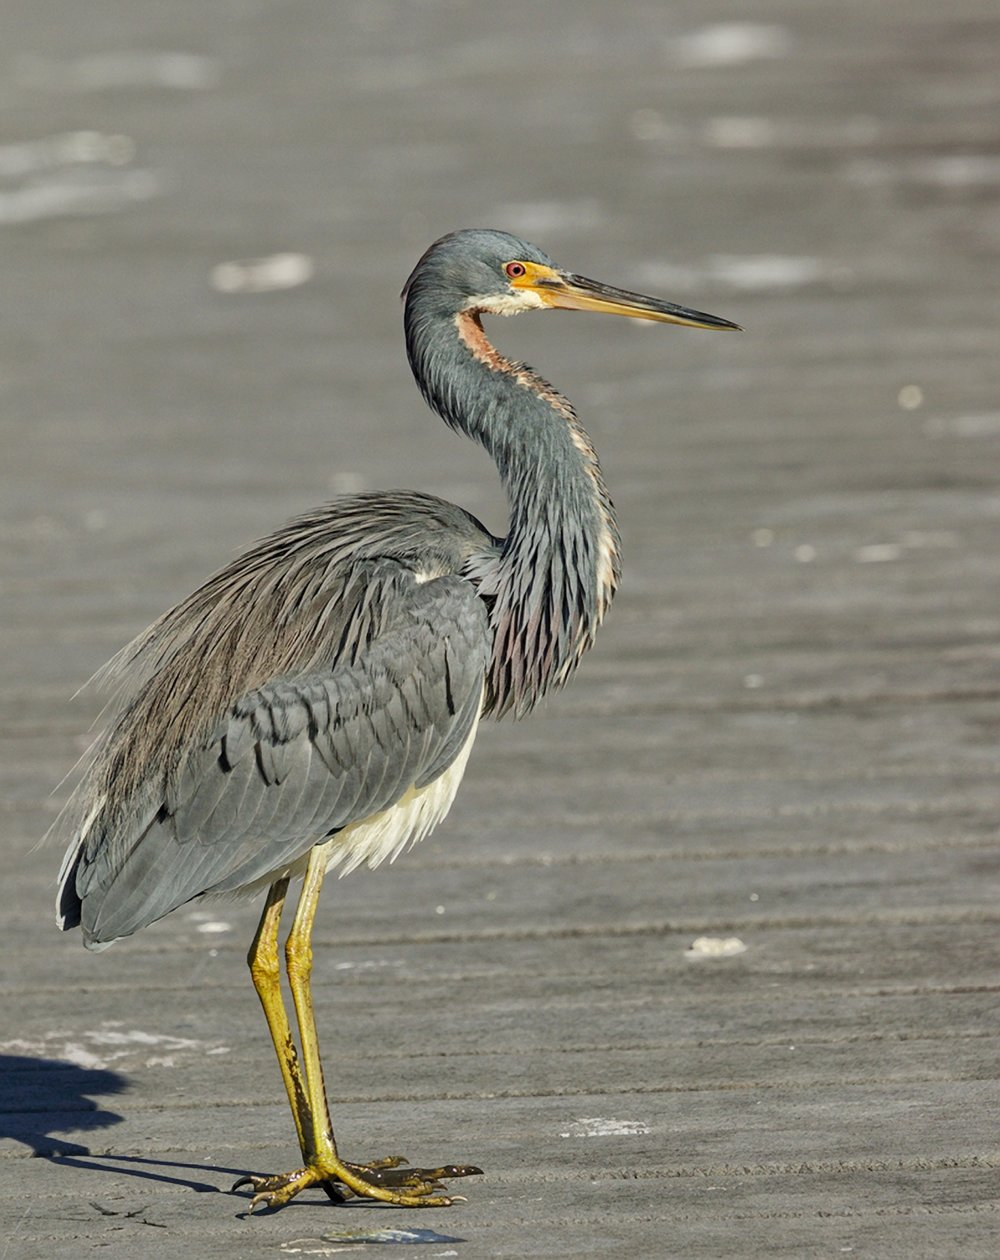 The local Tricolored Heron joins the party...